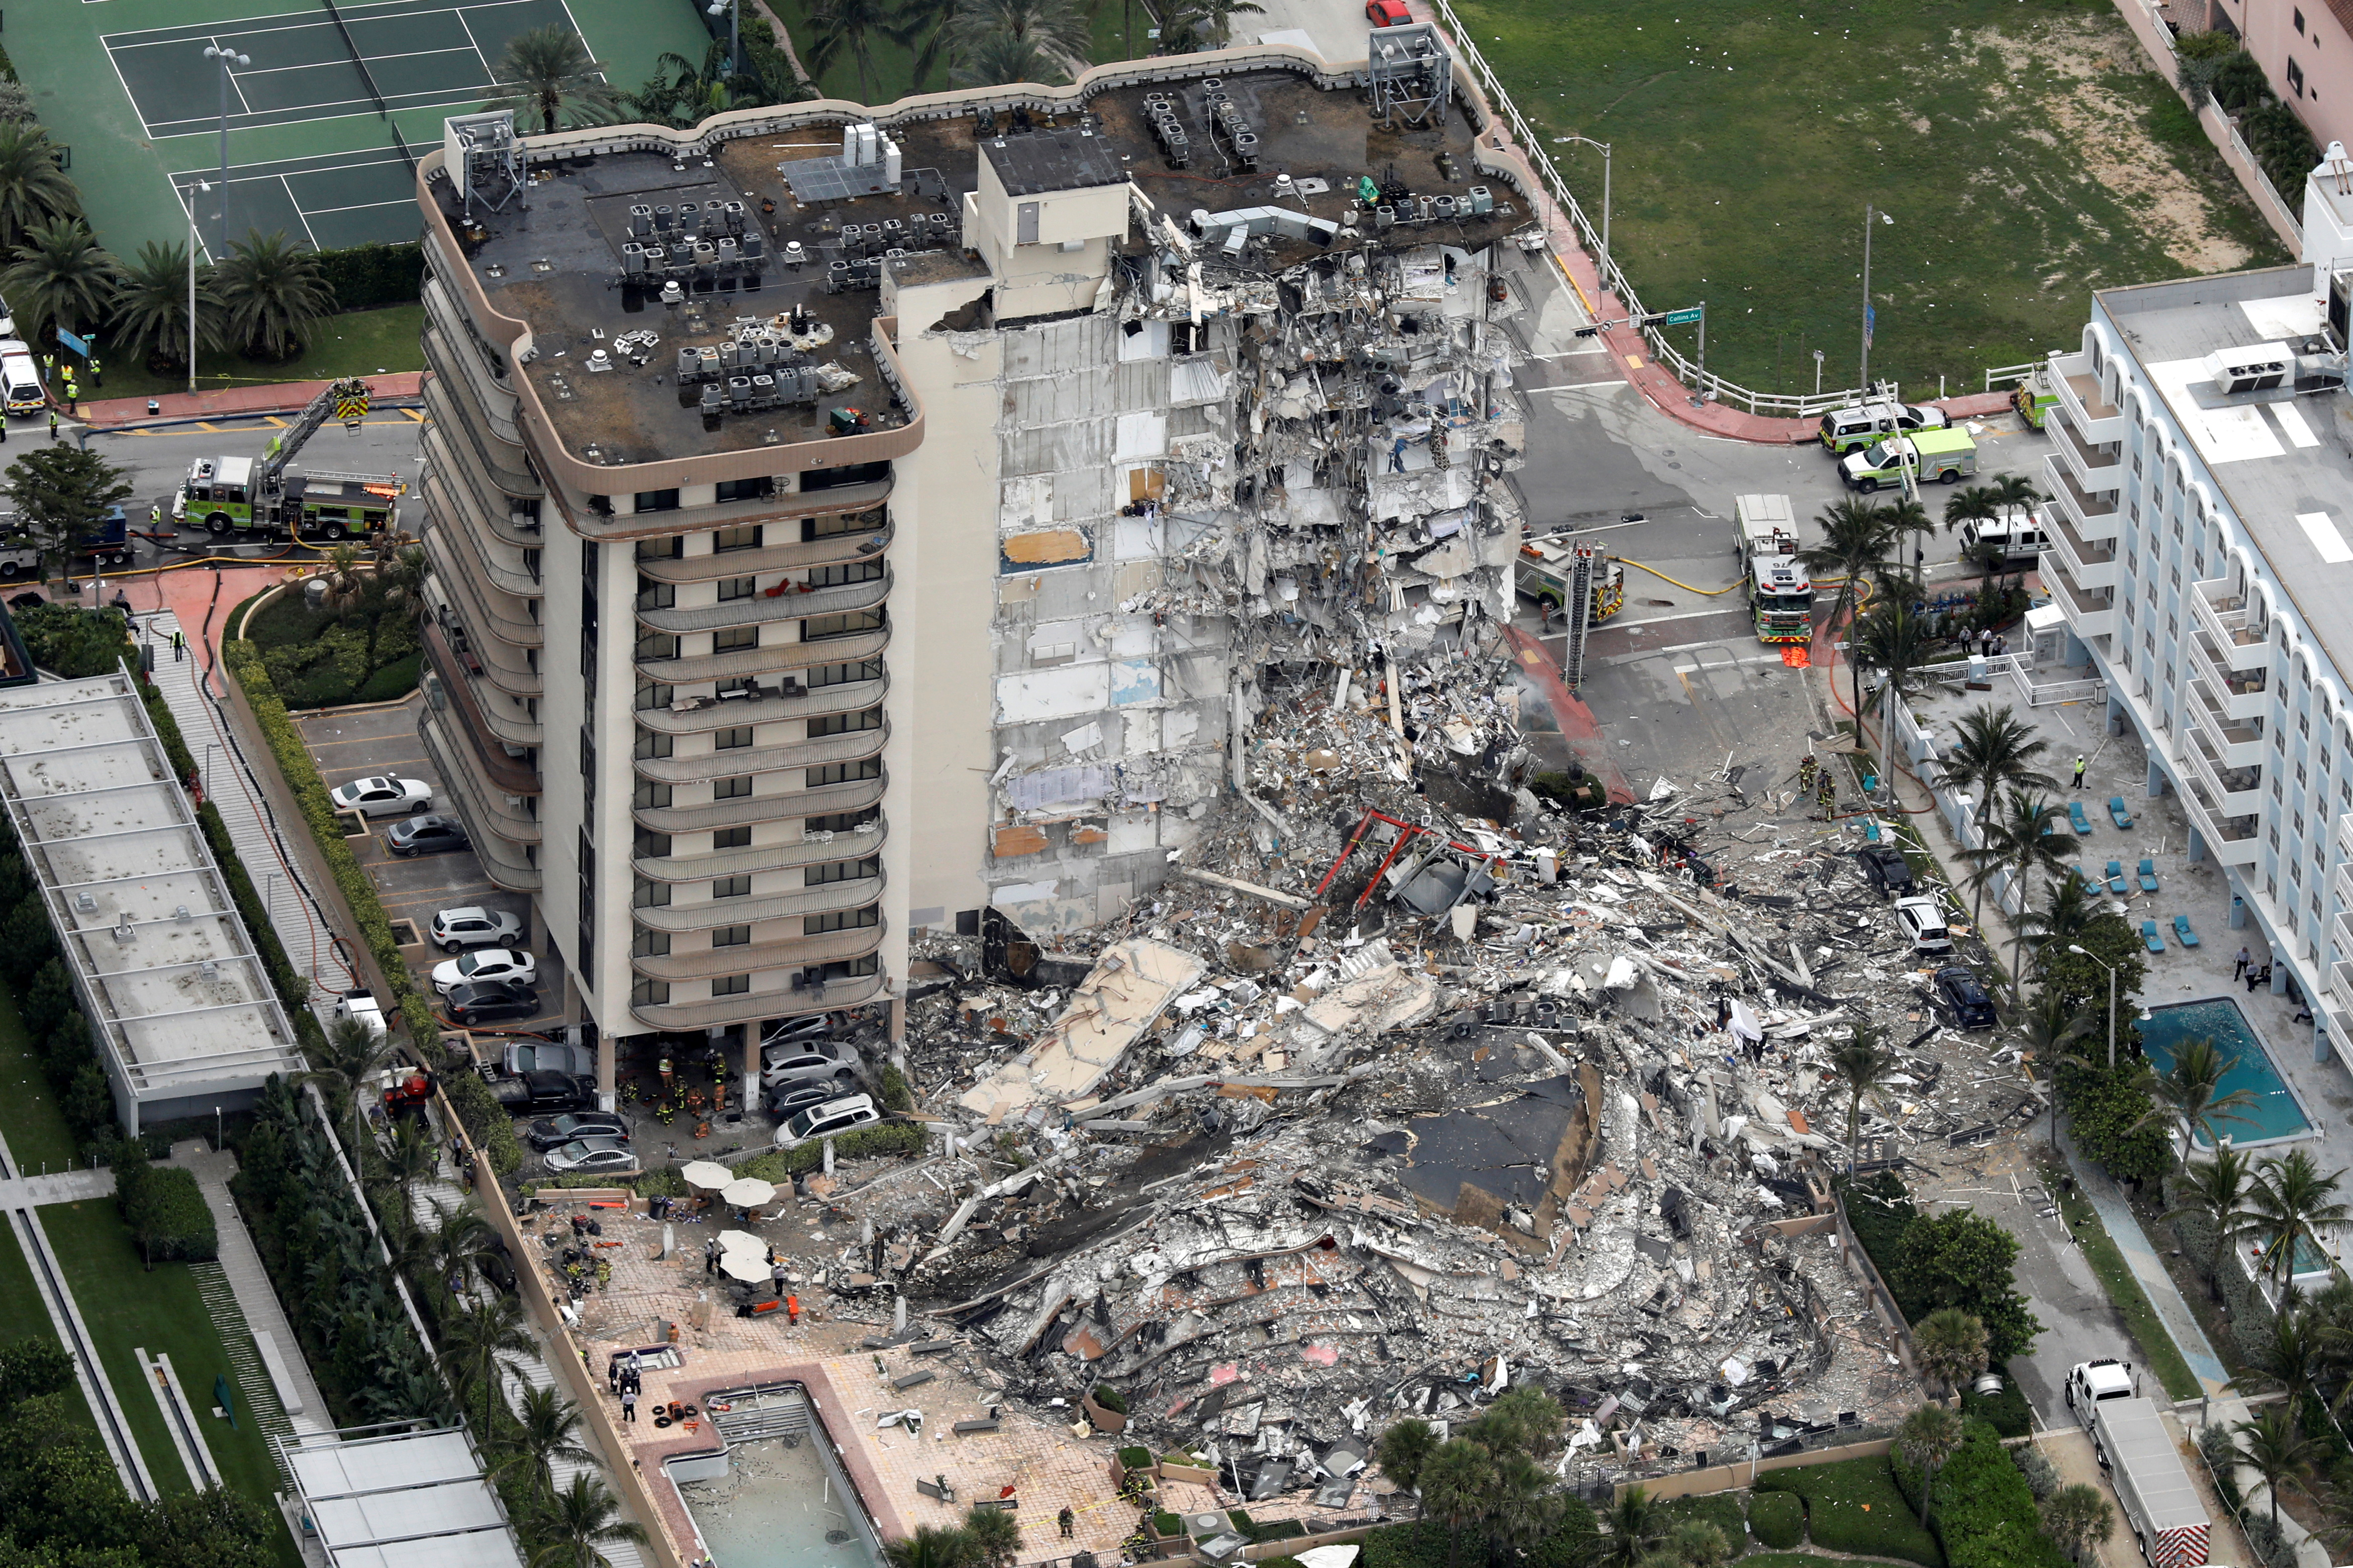 How to Prevent Another Building Collapse